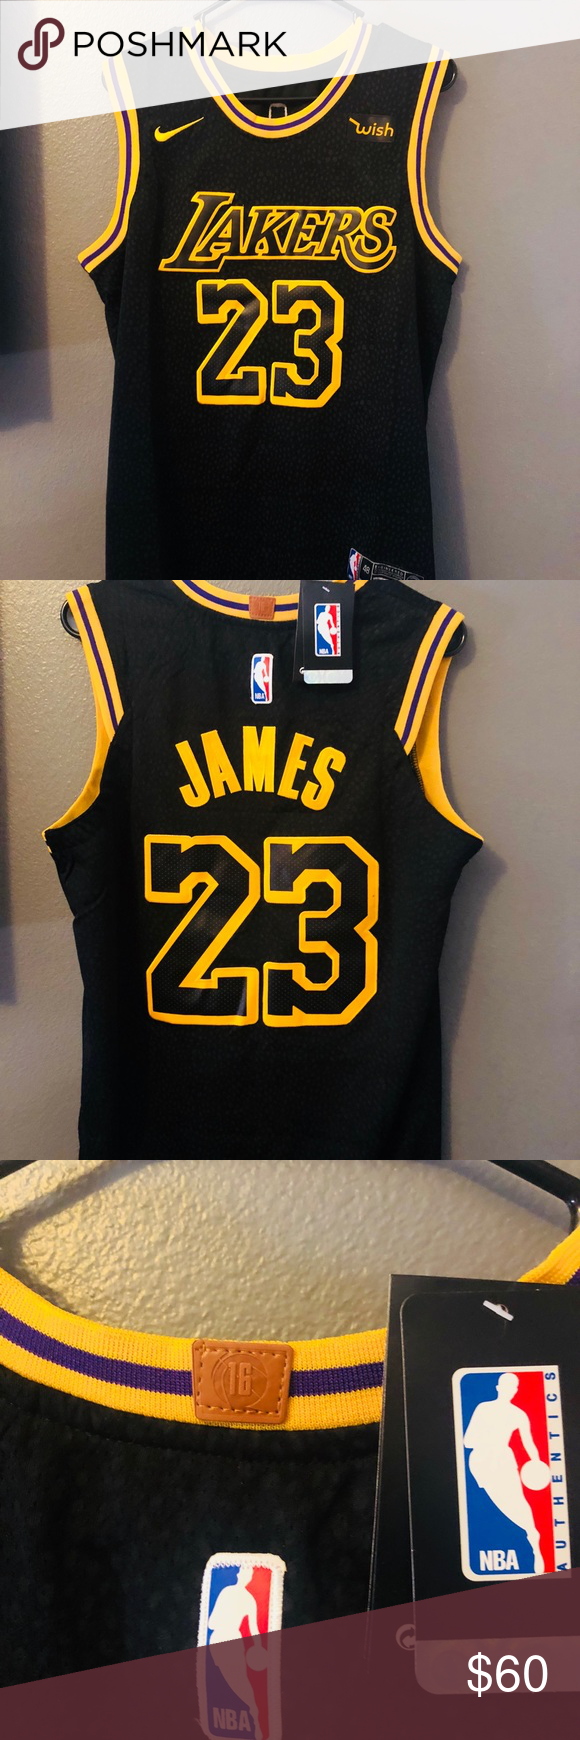 detailed look fed8d 3c7f8 Brand New Lebron Lakers City Jersey Sizes M,L 🔥🔥 NWT True ...